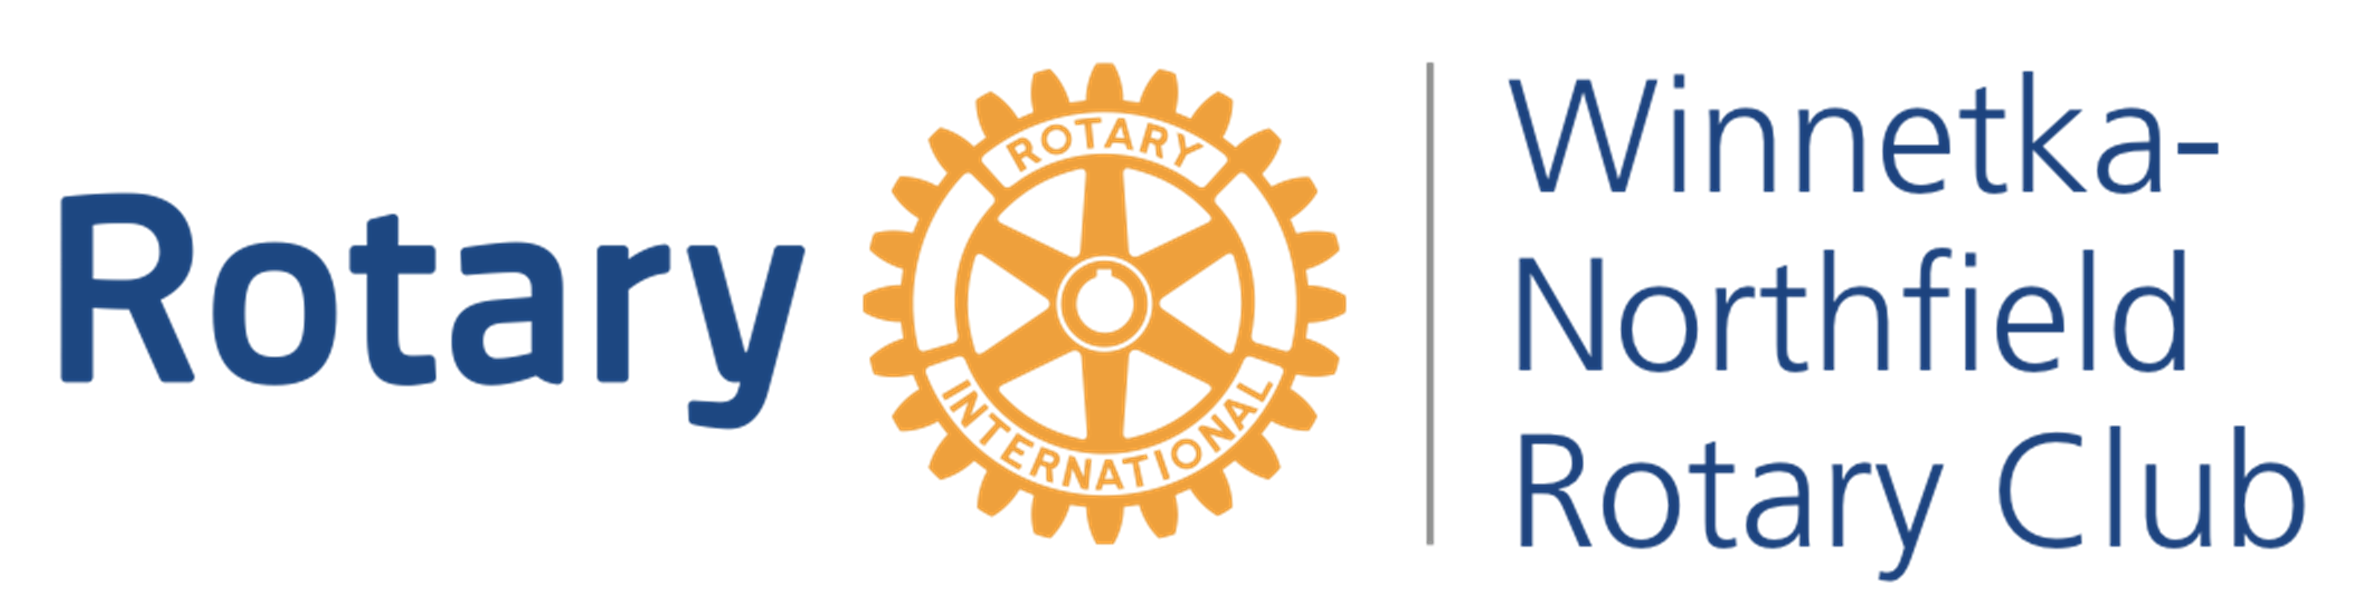 Rotary Club of Winnetka-Northfield